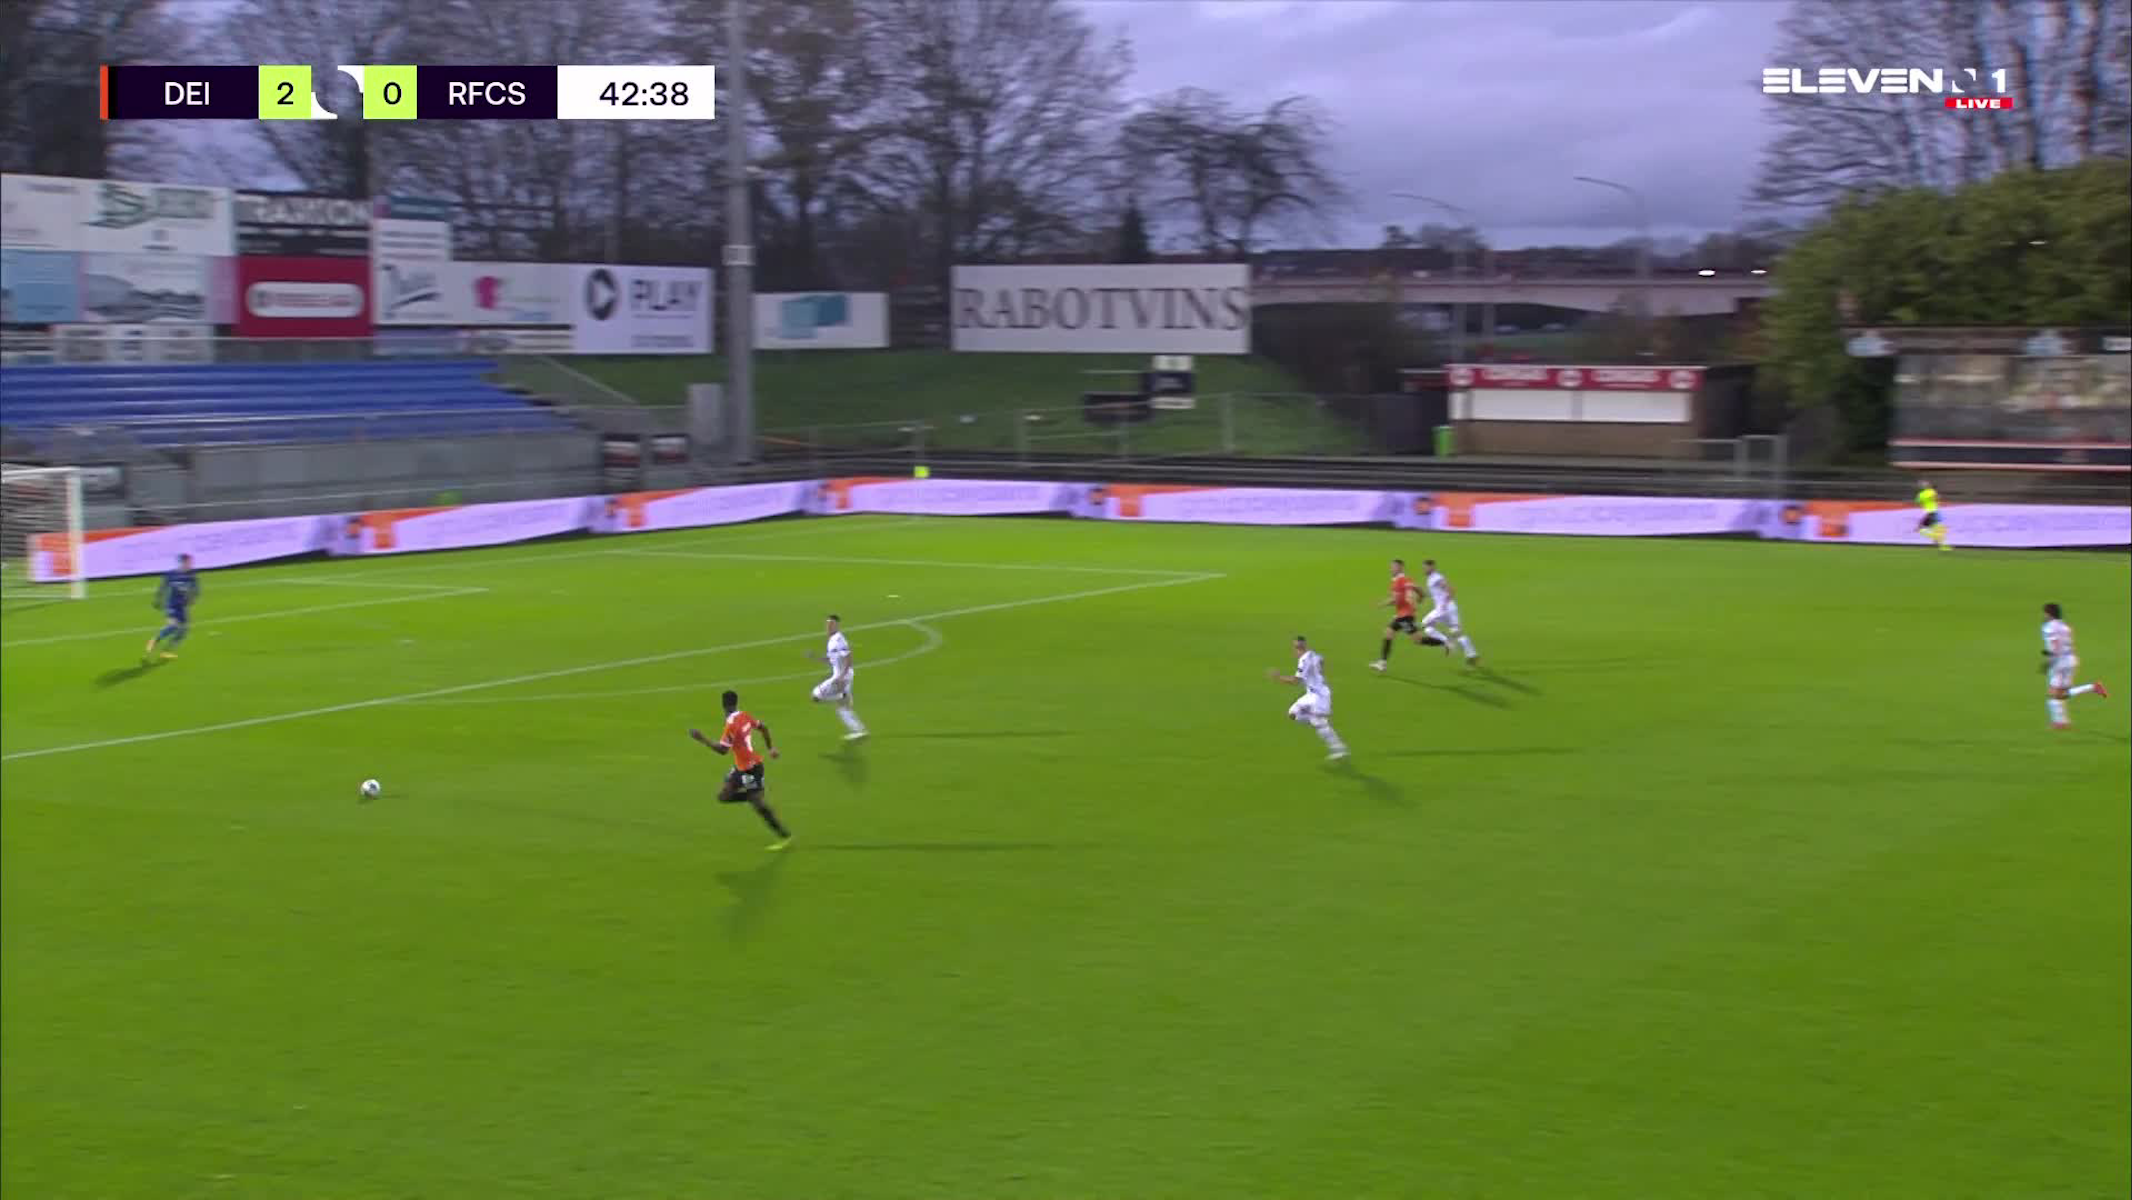 But Youssef Challouk (KMSK Deinze vs. RFC Seraing)